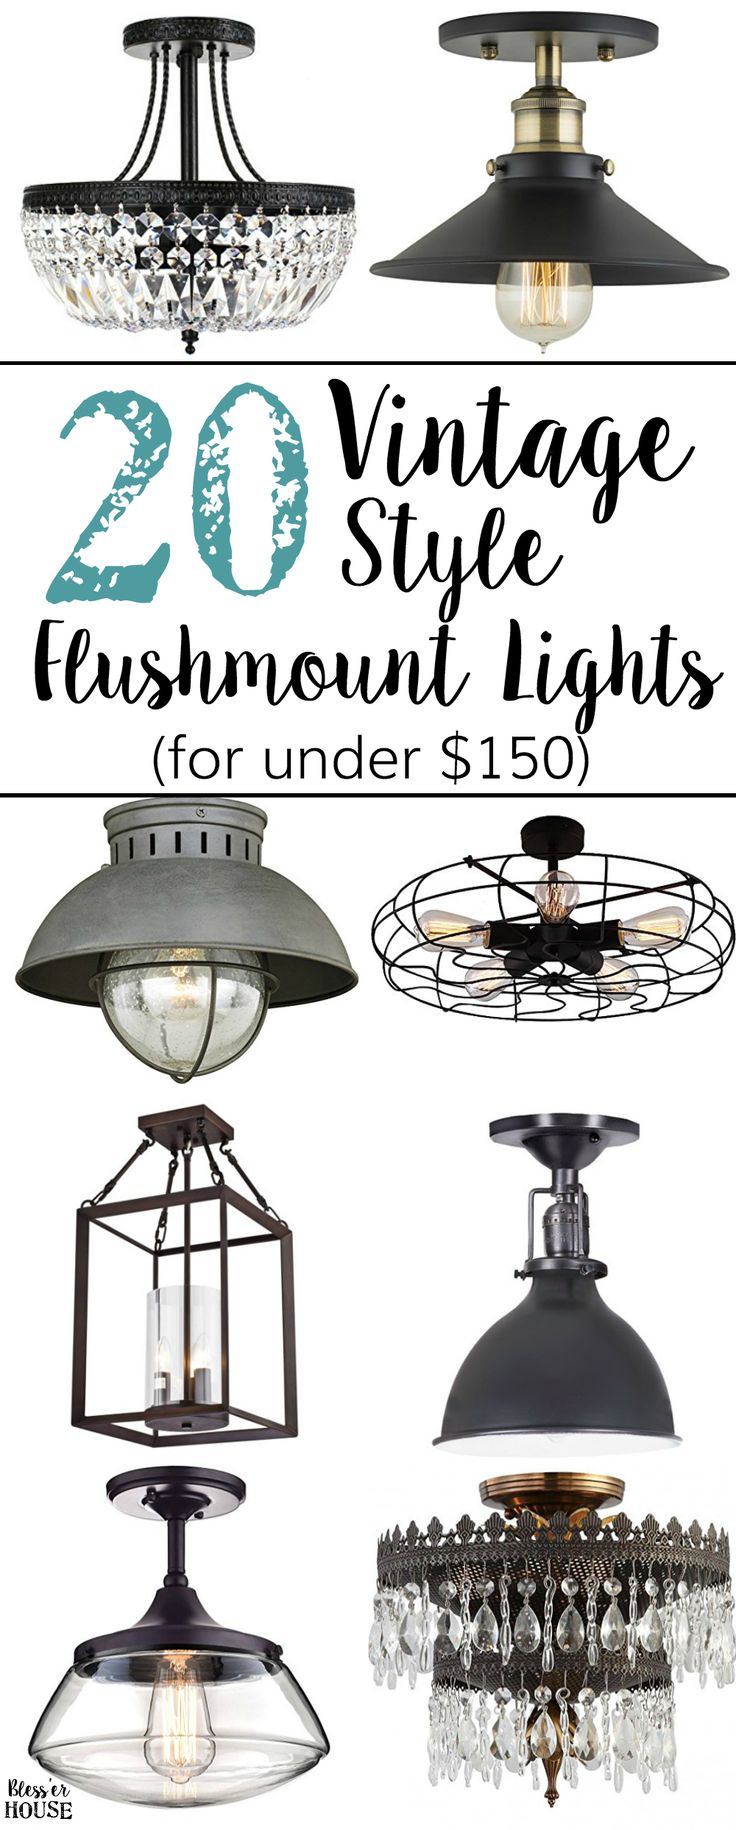 20 Vintage Inspired Flush Mount Lights on a Budget   www.blesserhouse.com - A budget shopping guide of 20 vintage inspired flush mount lights for industrial, cottage, farmhouse, and glam styles all for under $150.